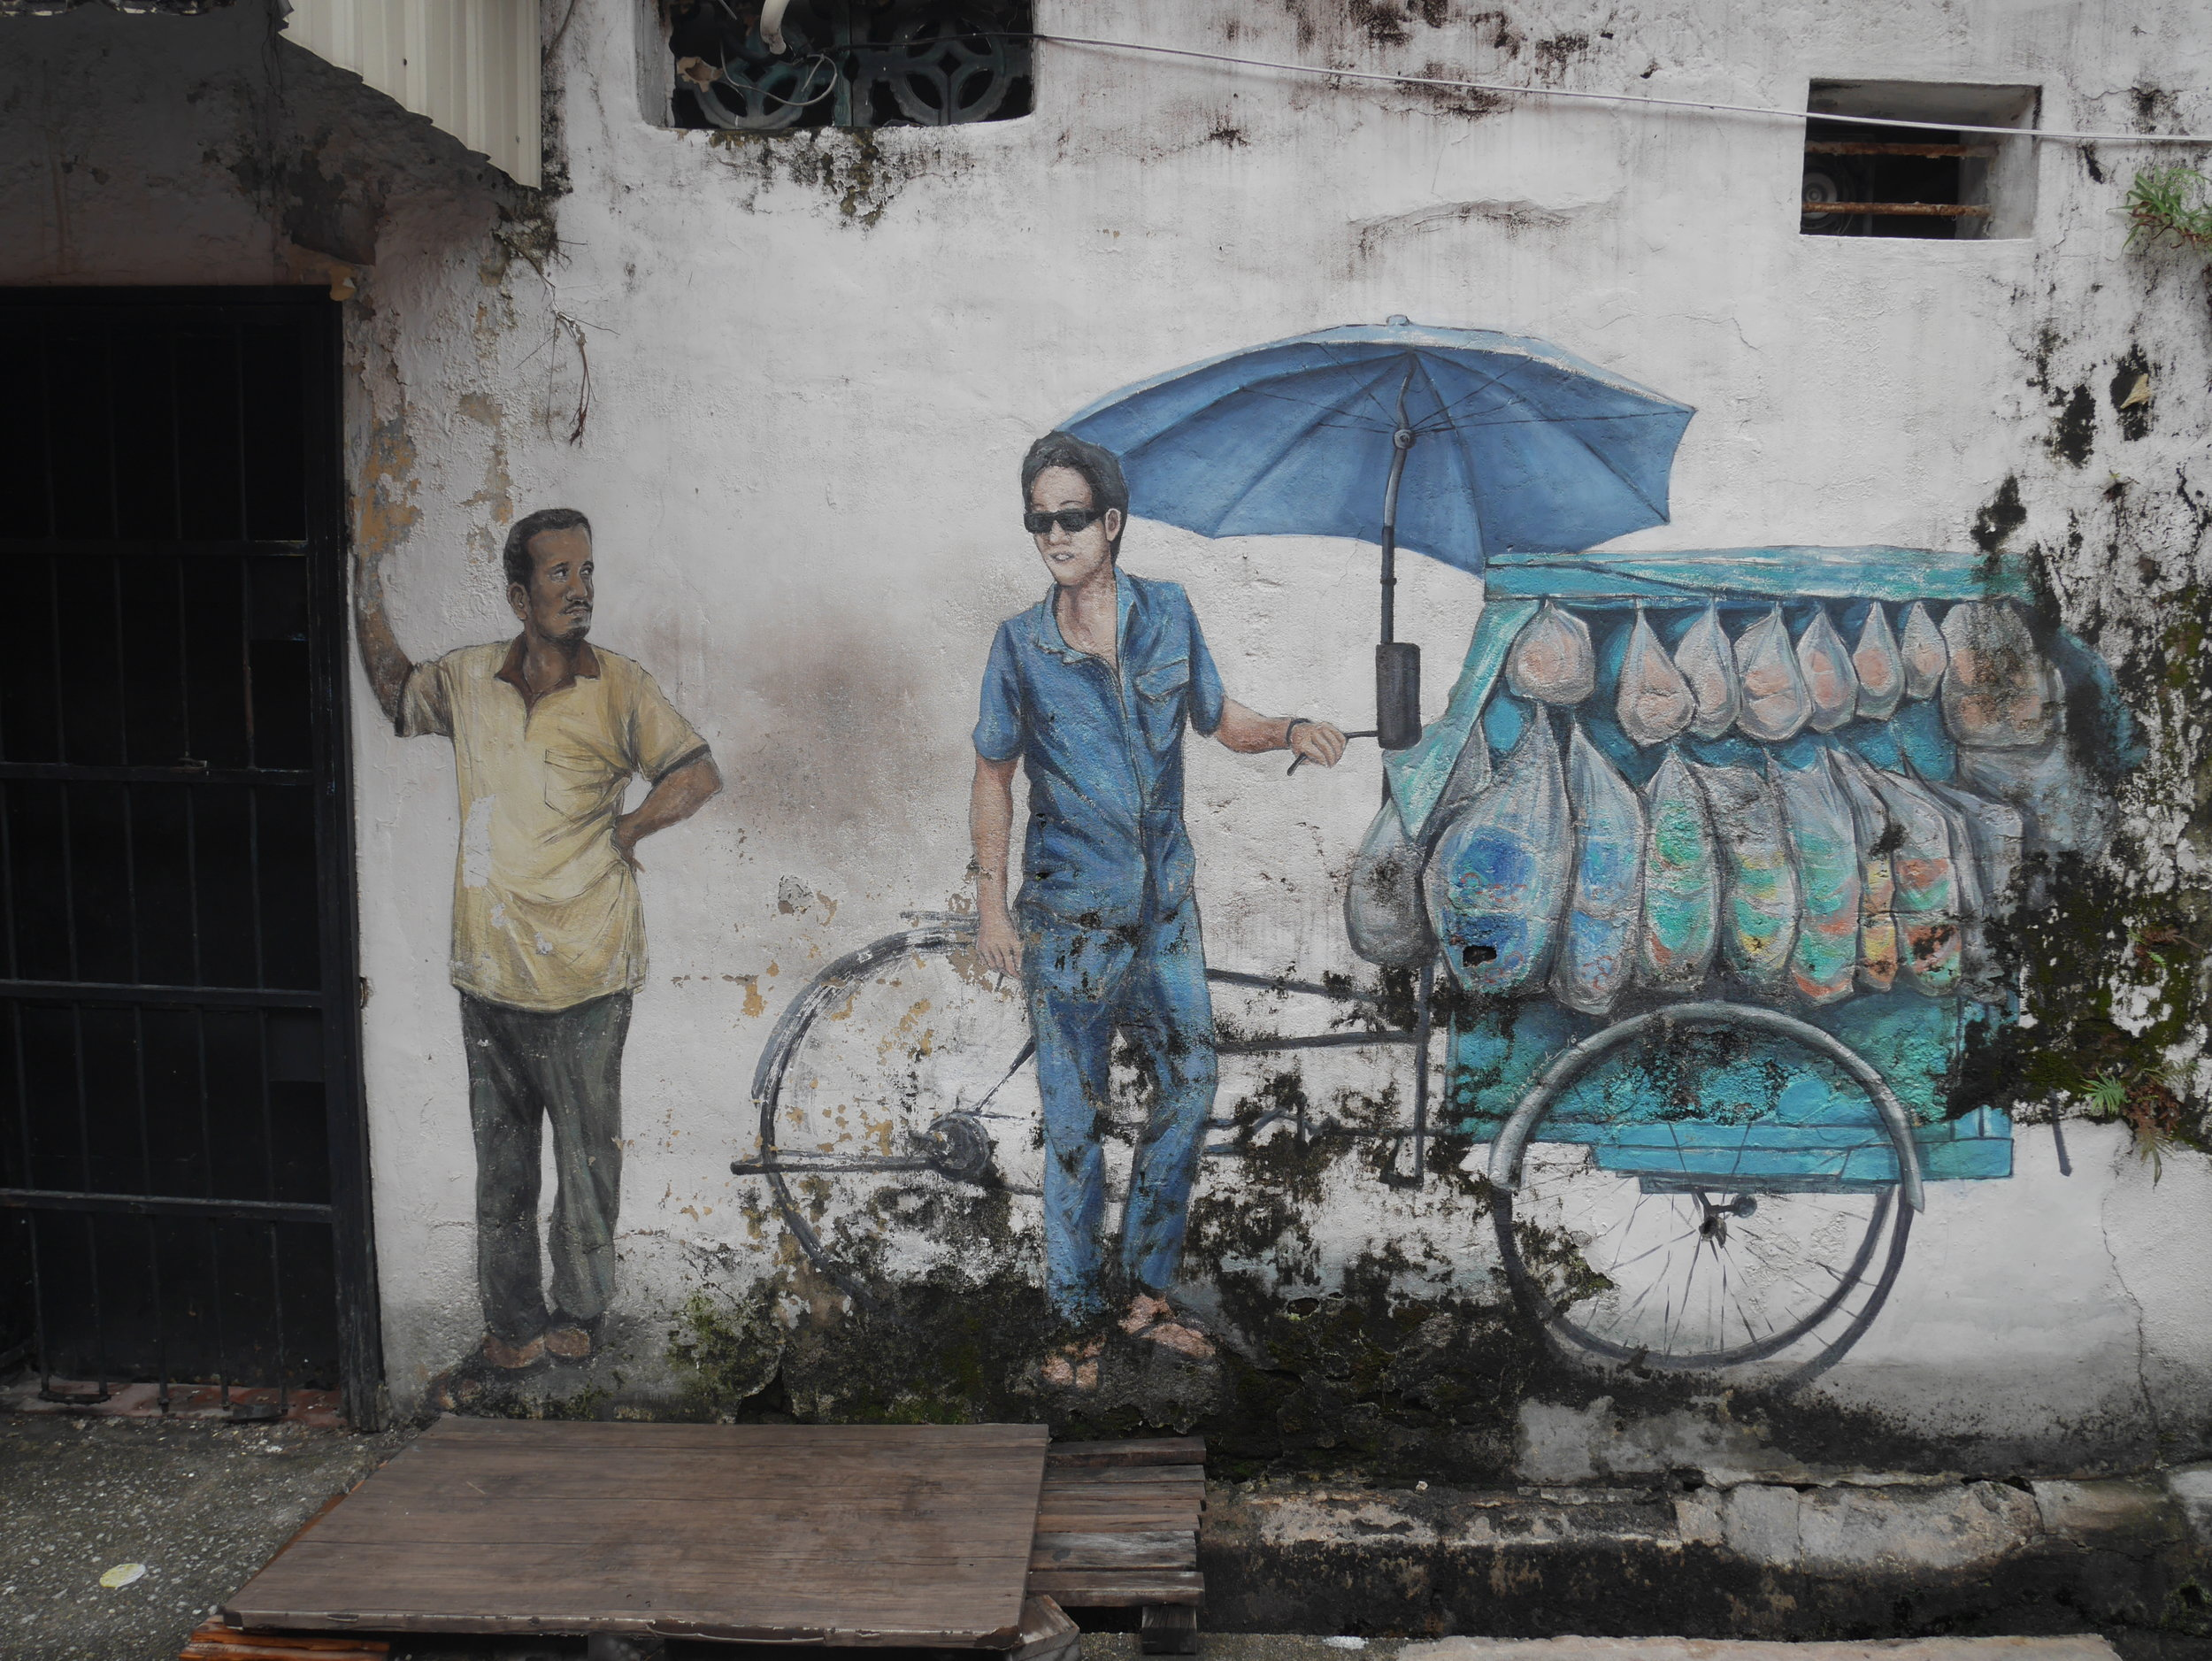 some of Penang's best street art can be found on and around Armenian Street in the old town